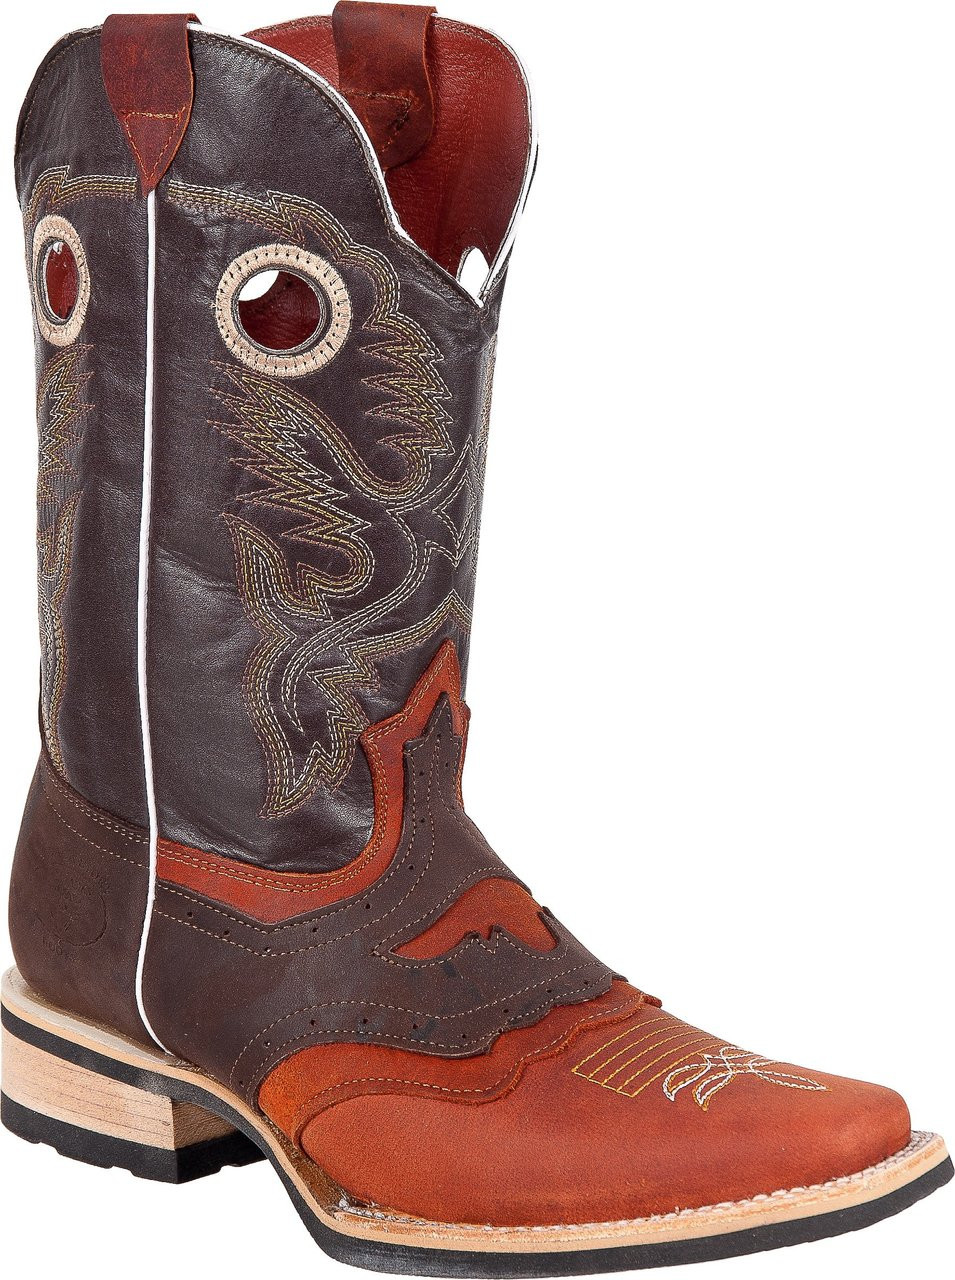 613a6c4ae26 MEN'S BOOT - BULL HEAD RODEO 741